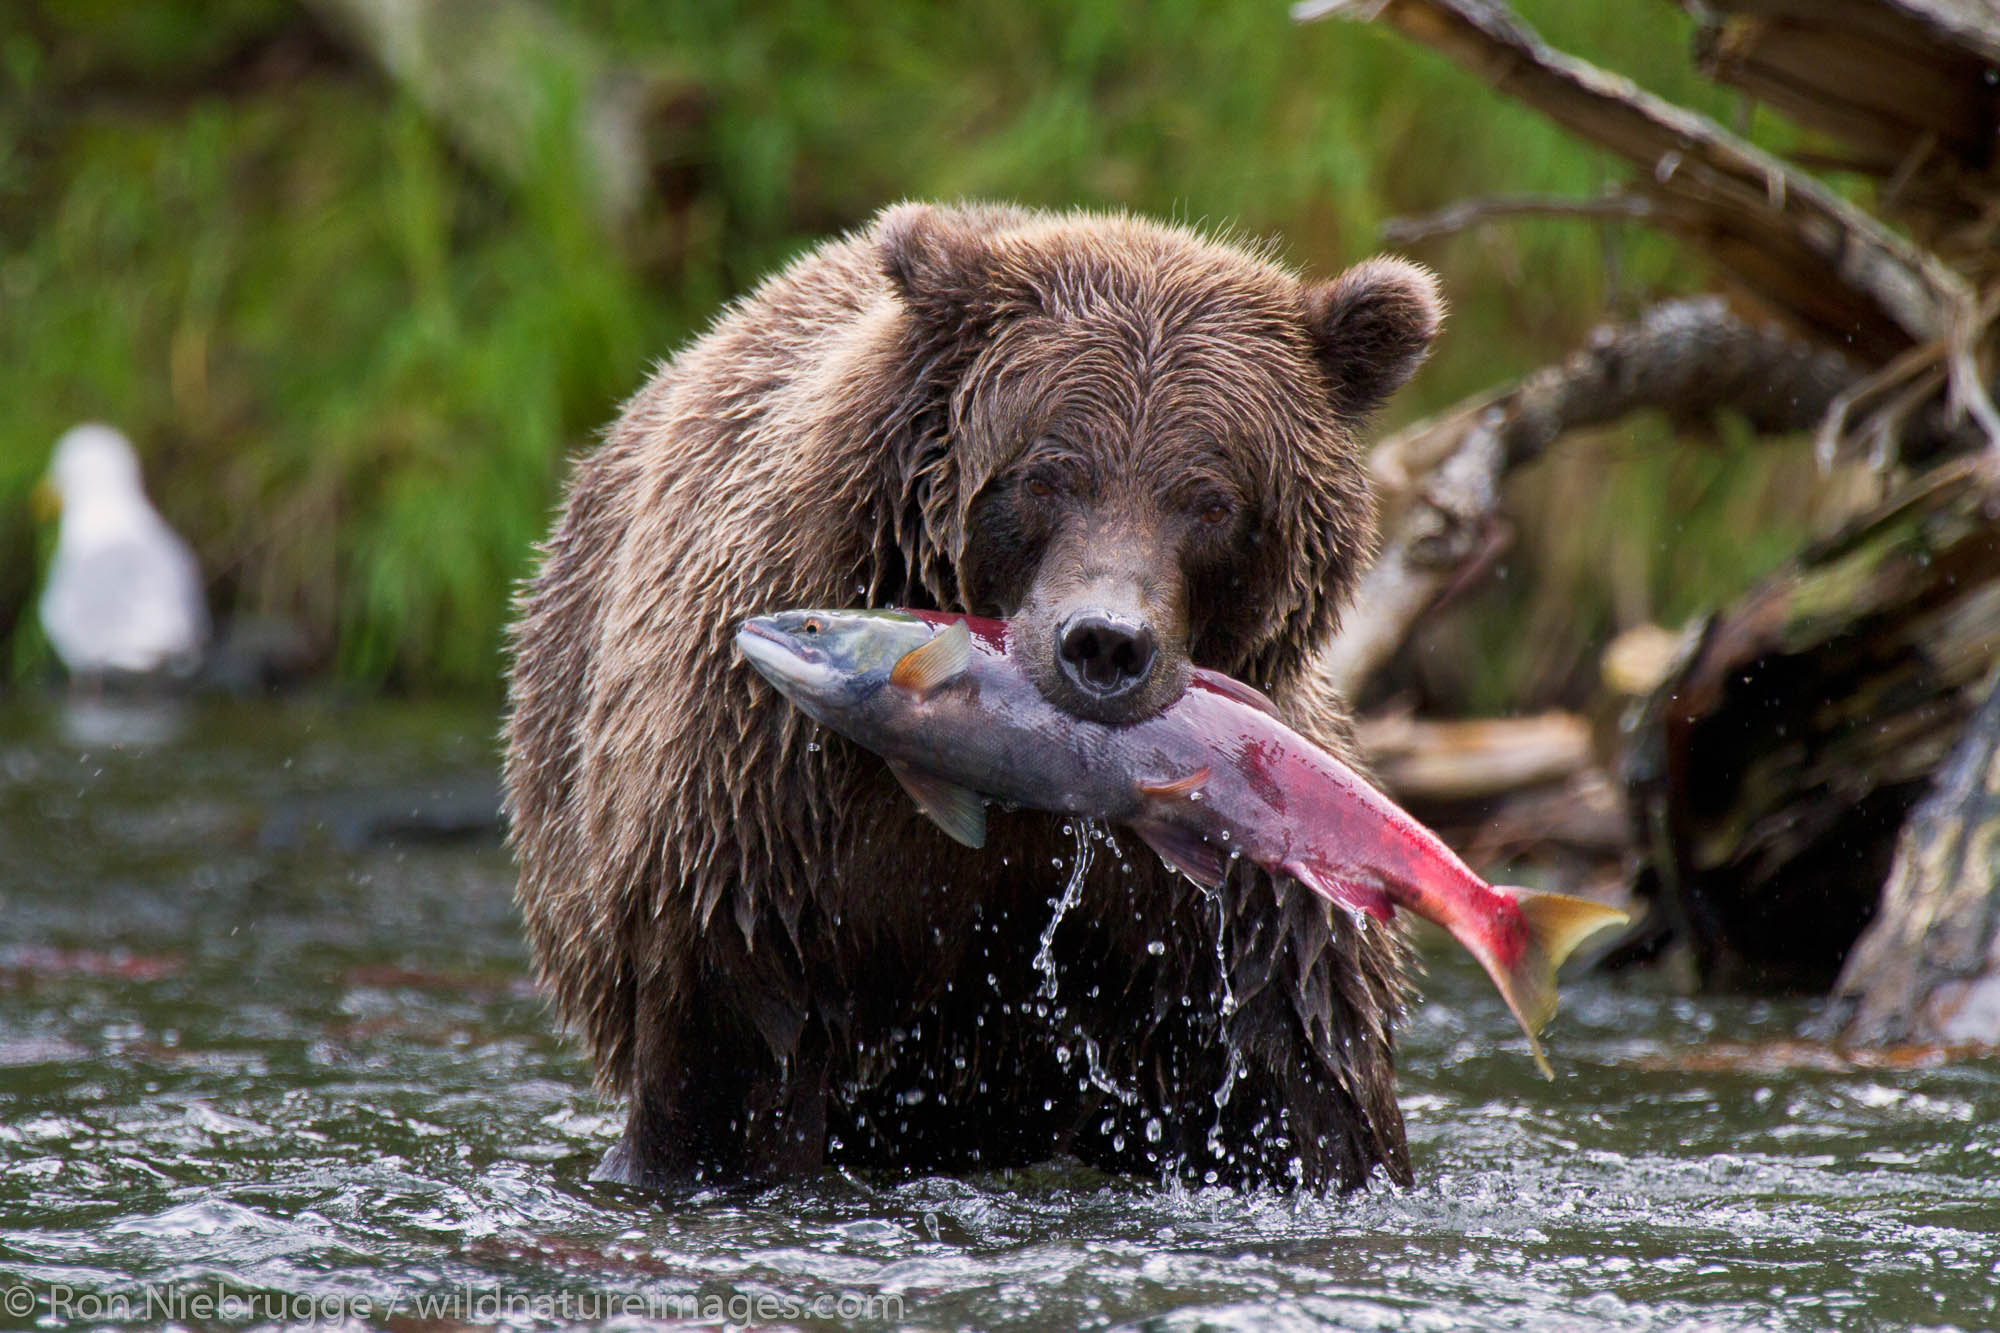 A Brown or Grizzly Bear with a red salmon, Chugach National Forest, Alaska.